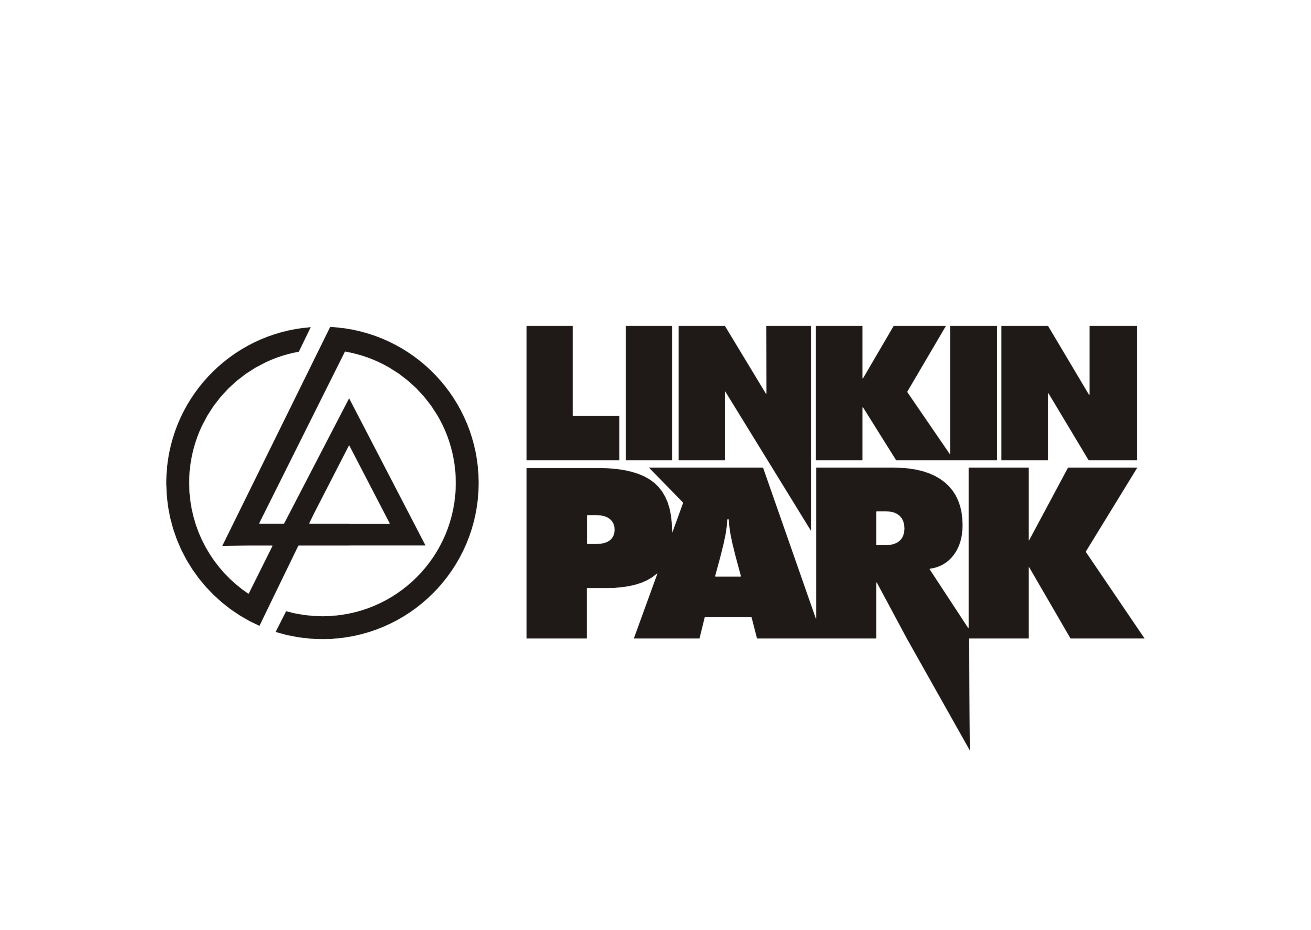 Blackberry Q10 Libre Logo Linkin Park Vector Just Share Bandas Musica